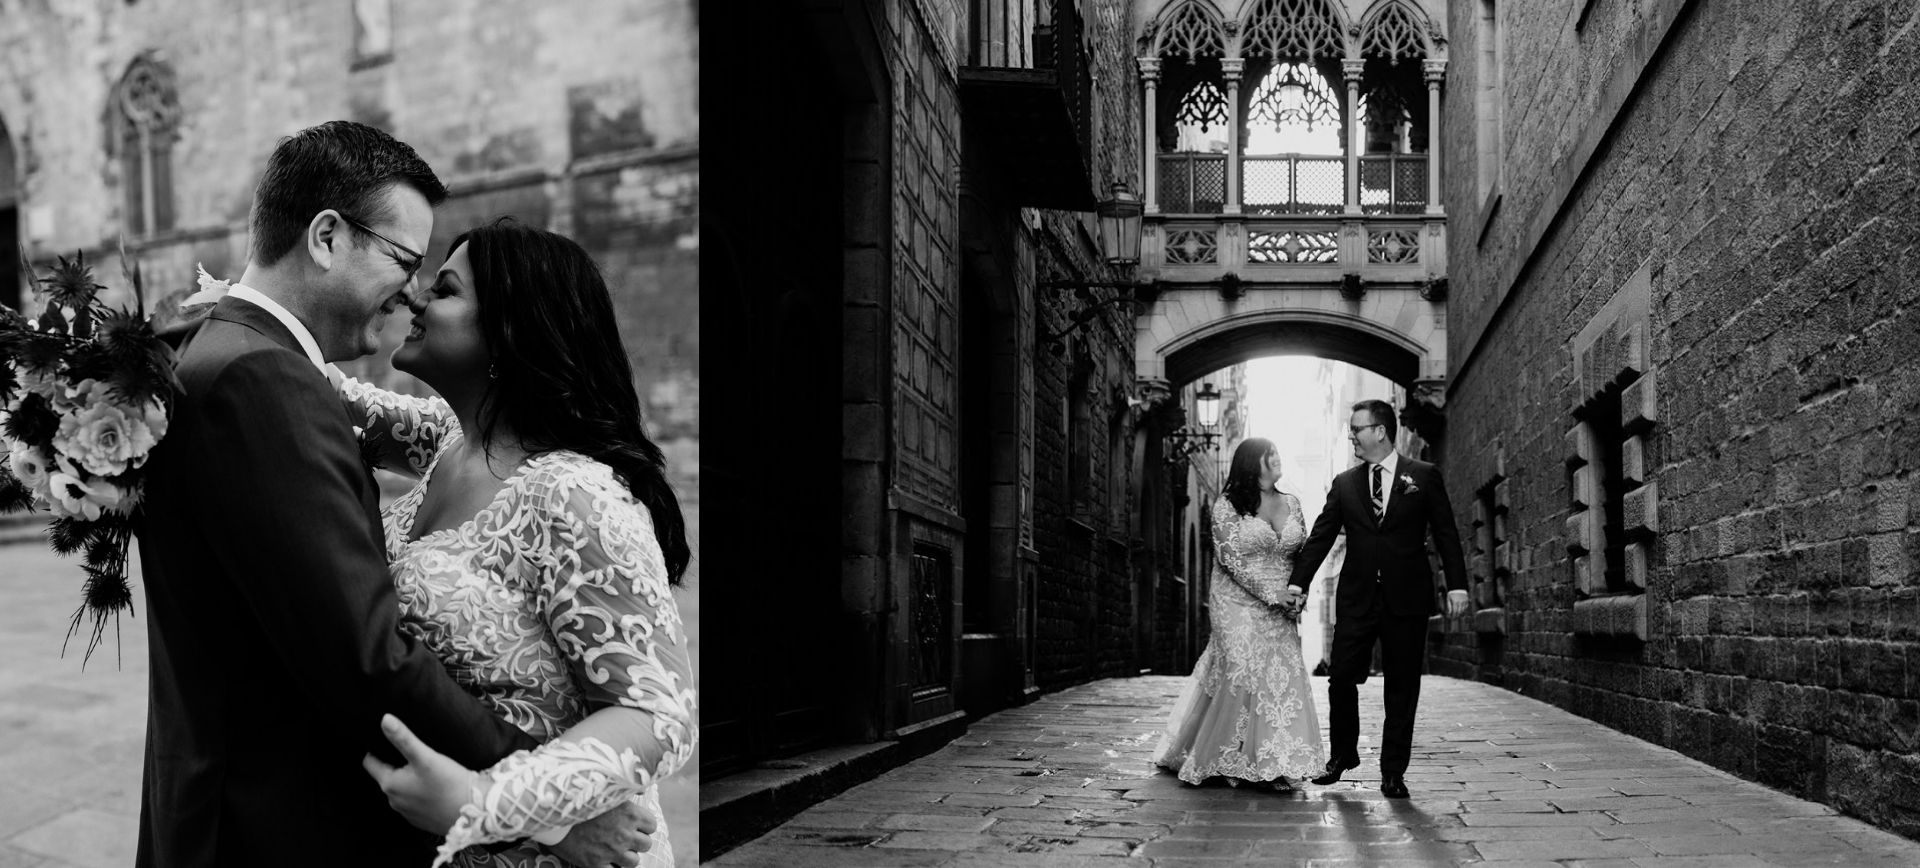 barcelona elopement package - gothic quarter wedding